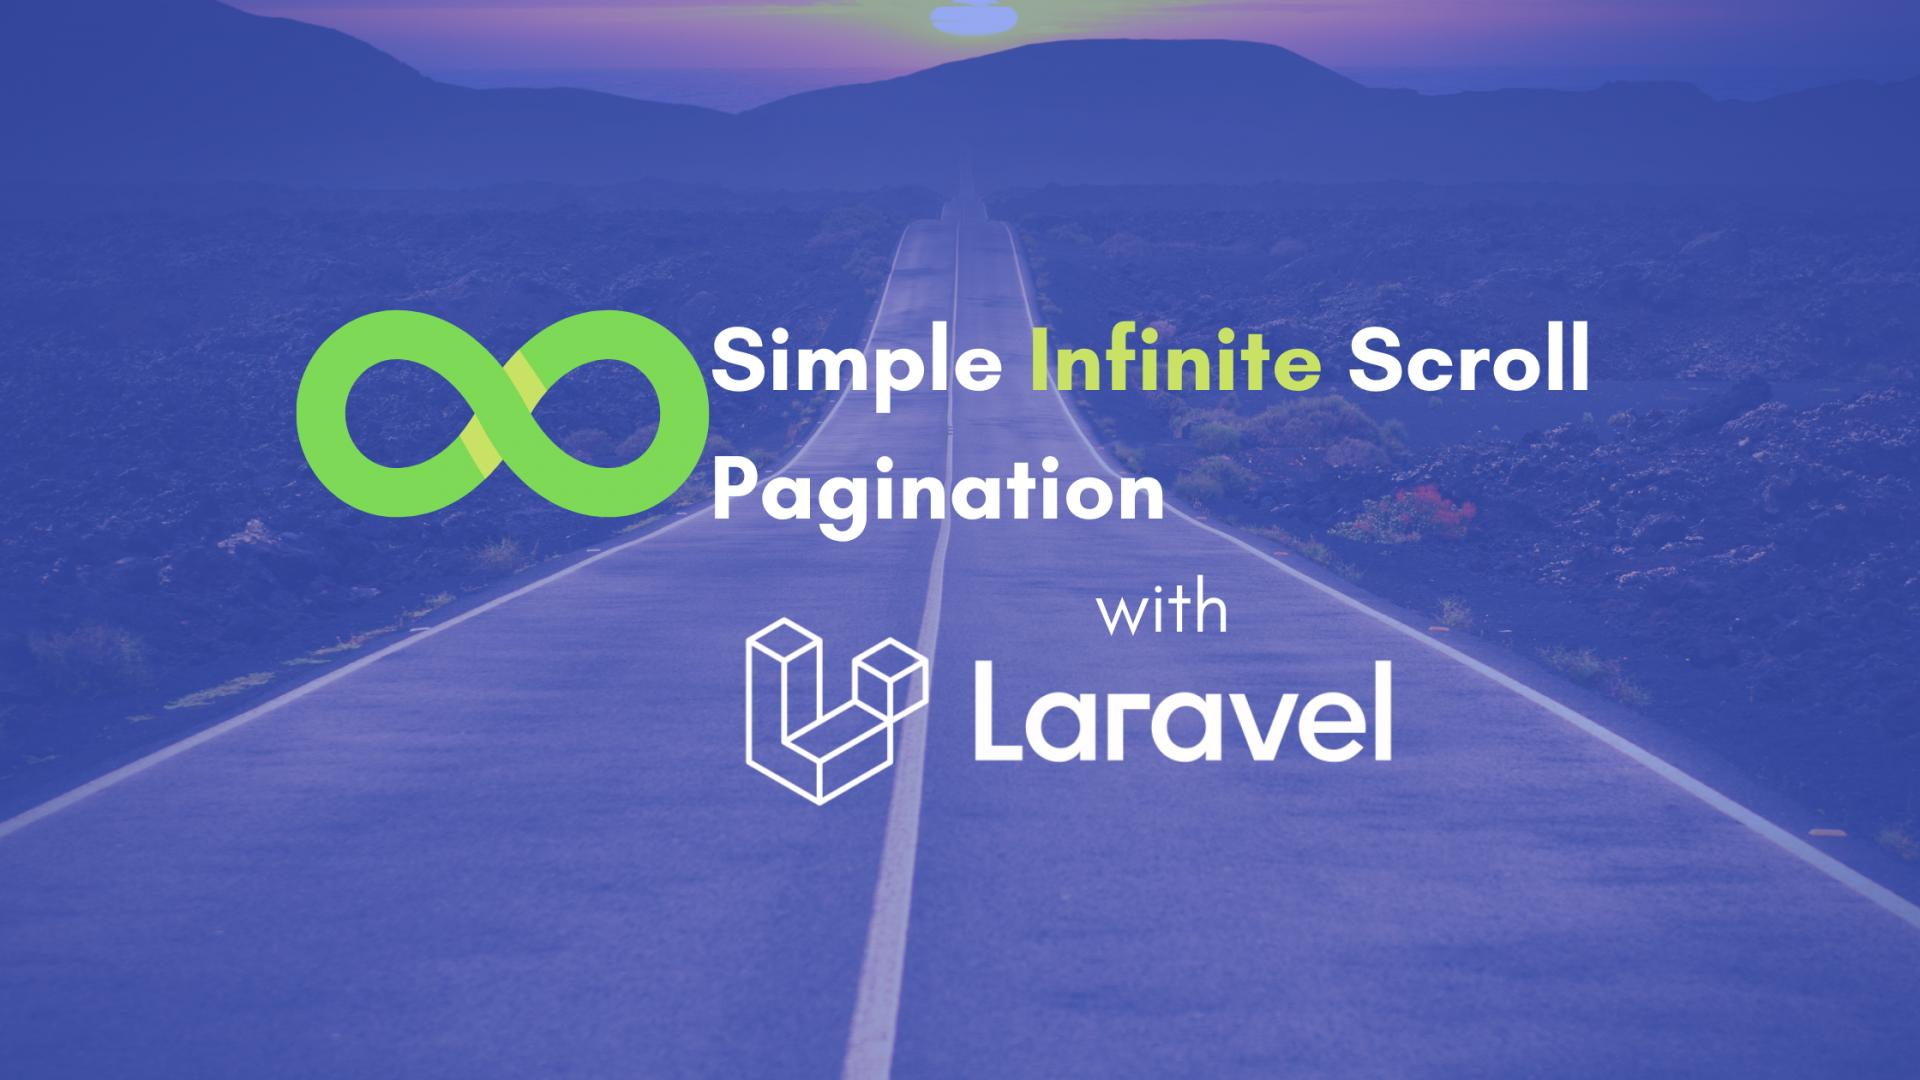 How to Add a Simple Infinite Scroll Pagination to Laravel?